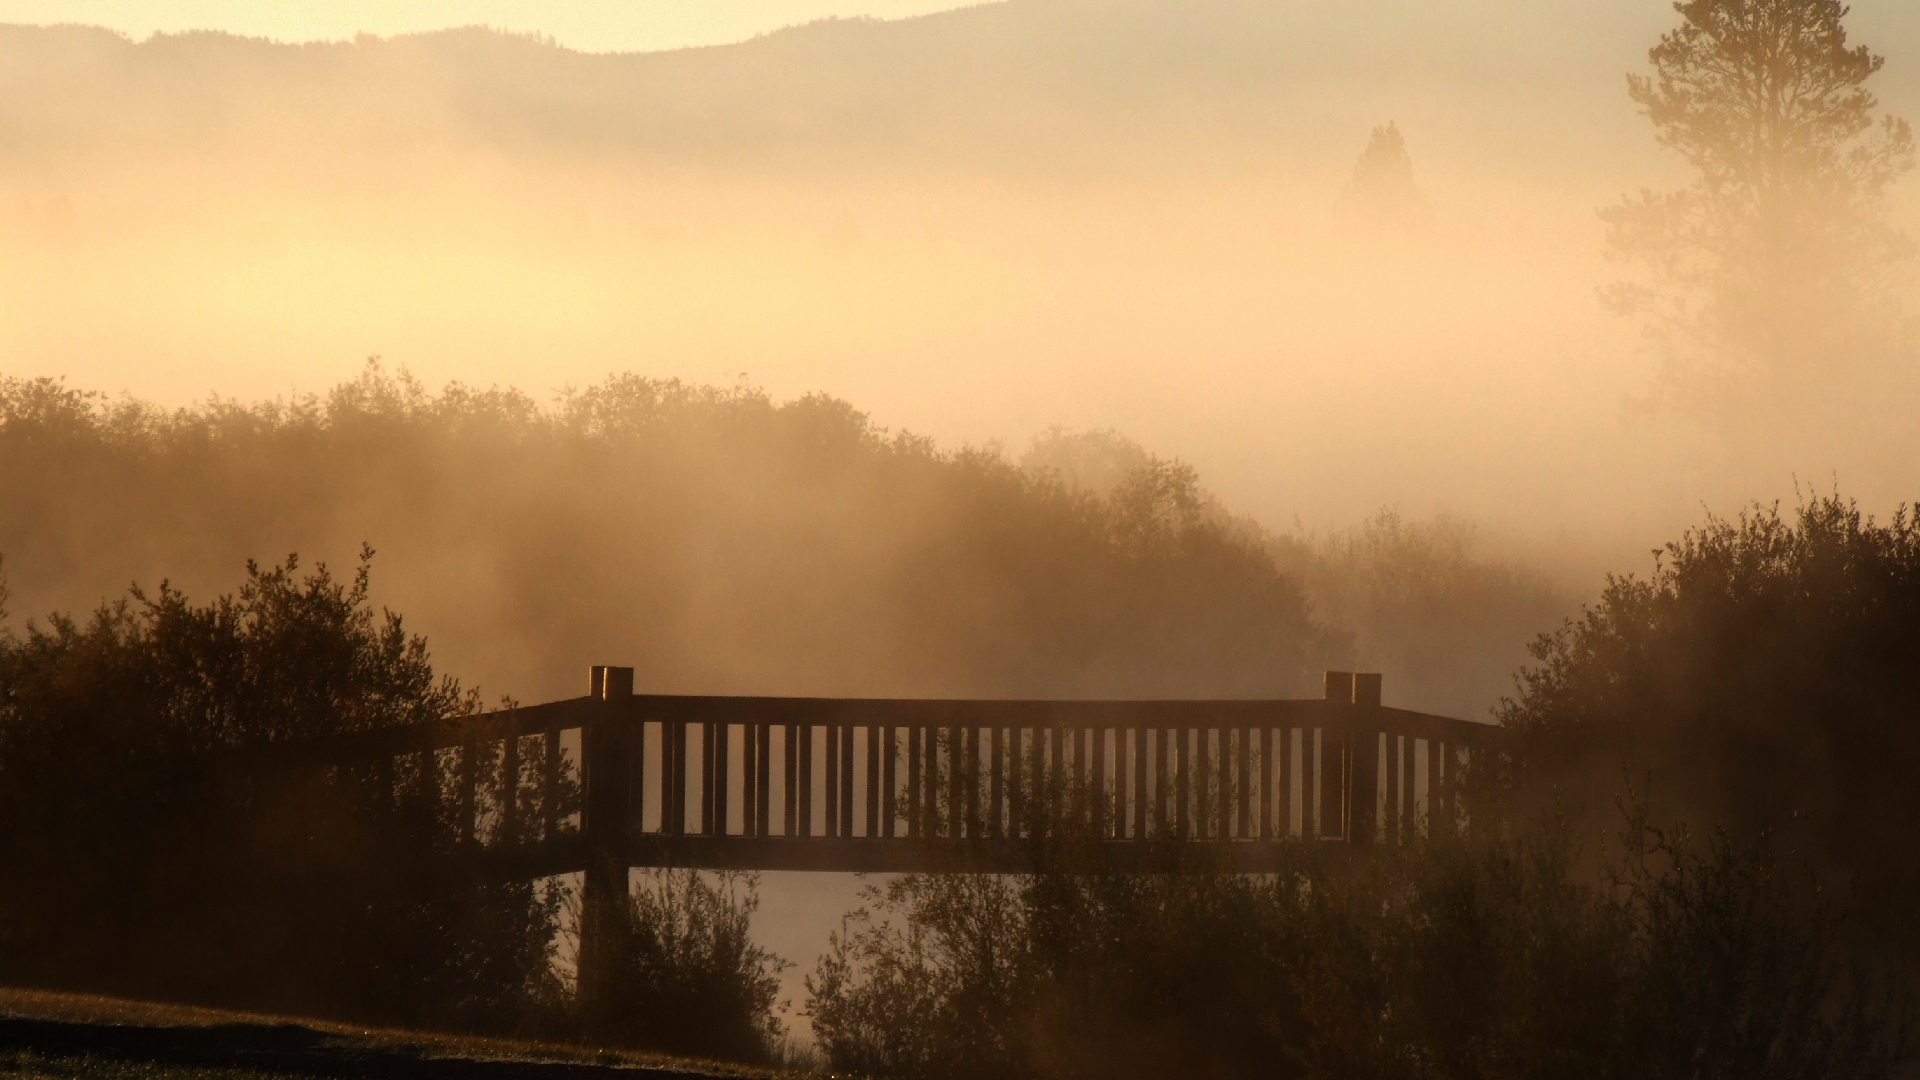 Image Bridge In Mist Wallpapers And Stock Photos